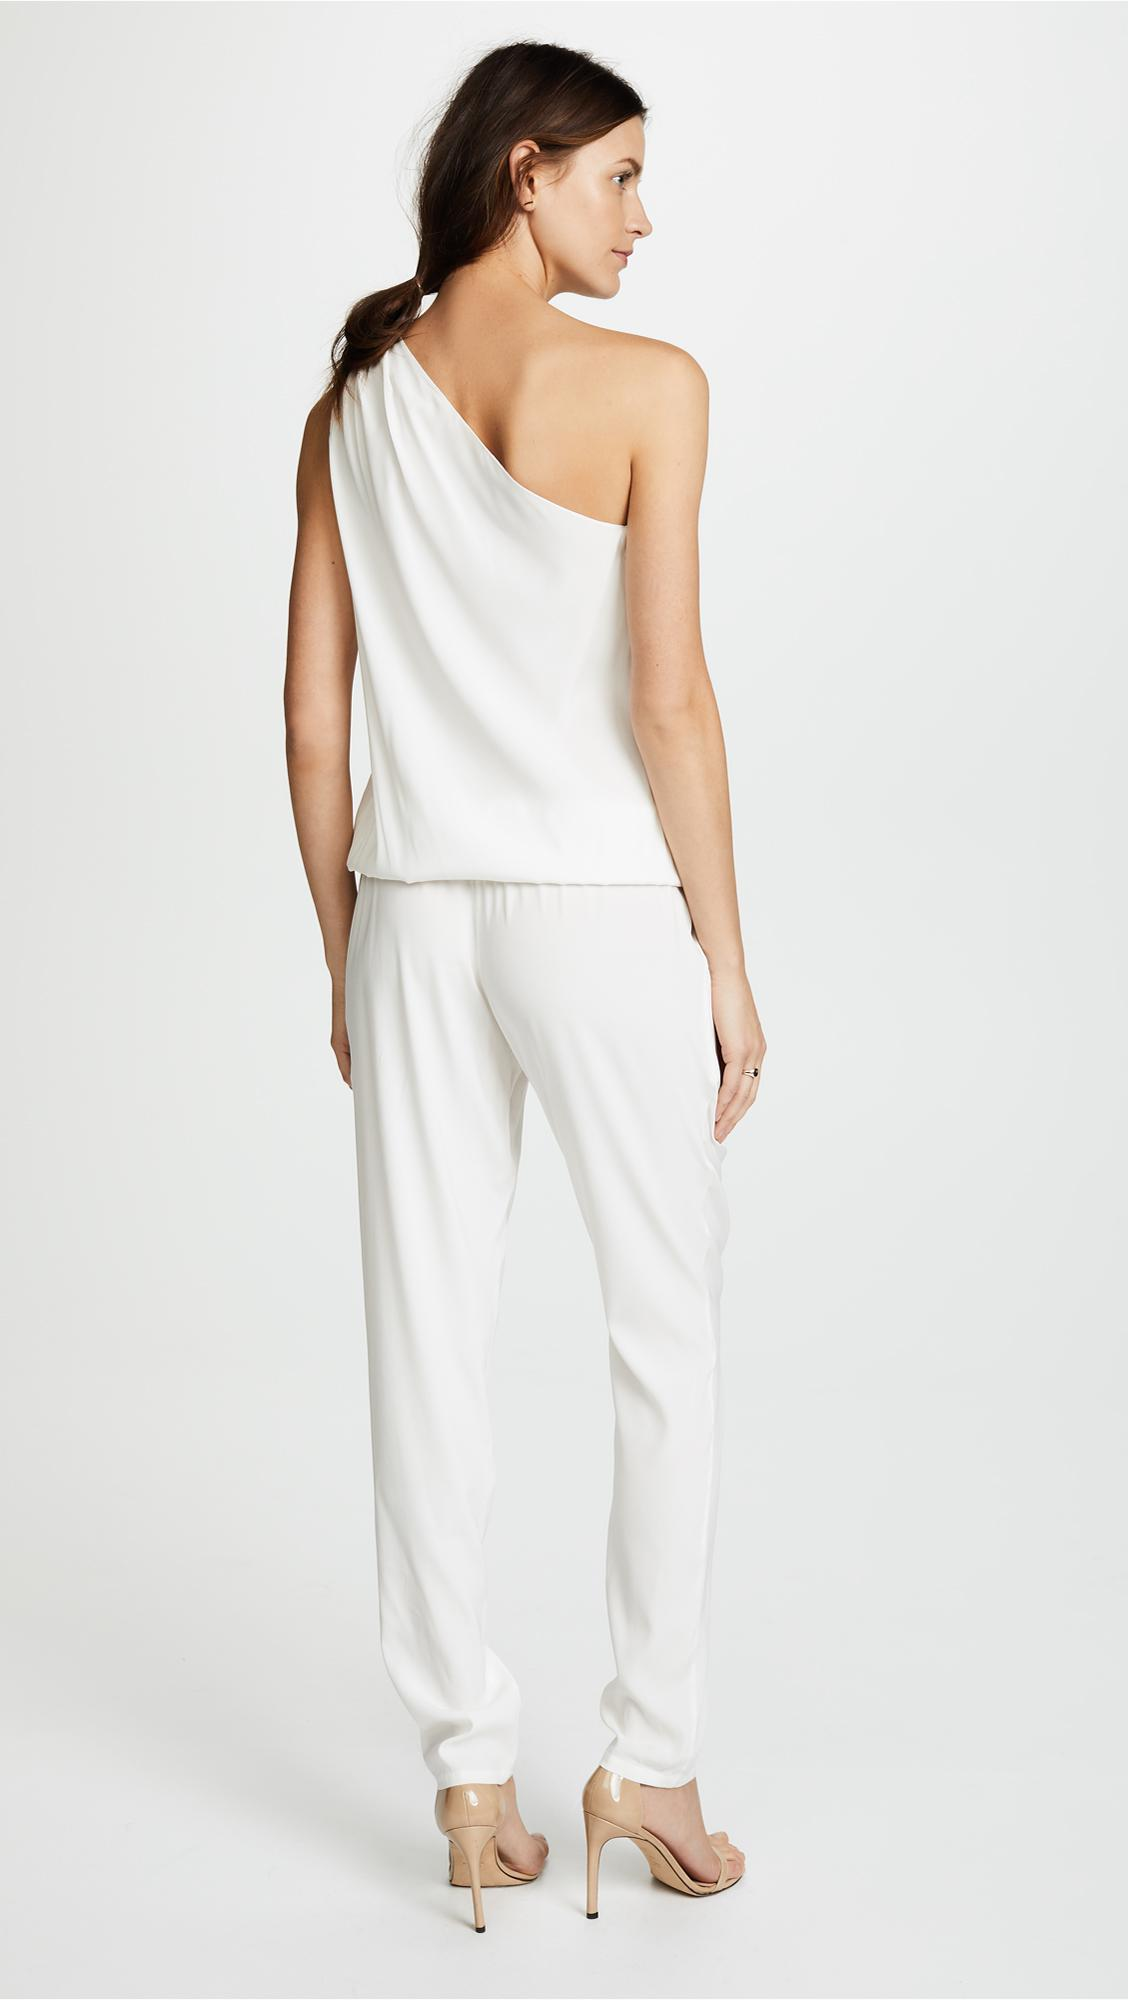 89df7bcc9947 Ramy Brook - White Lulu One Shoulder Jumpsuit - Lyst. View fullscreen